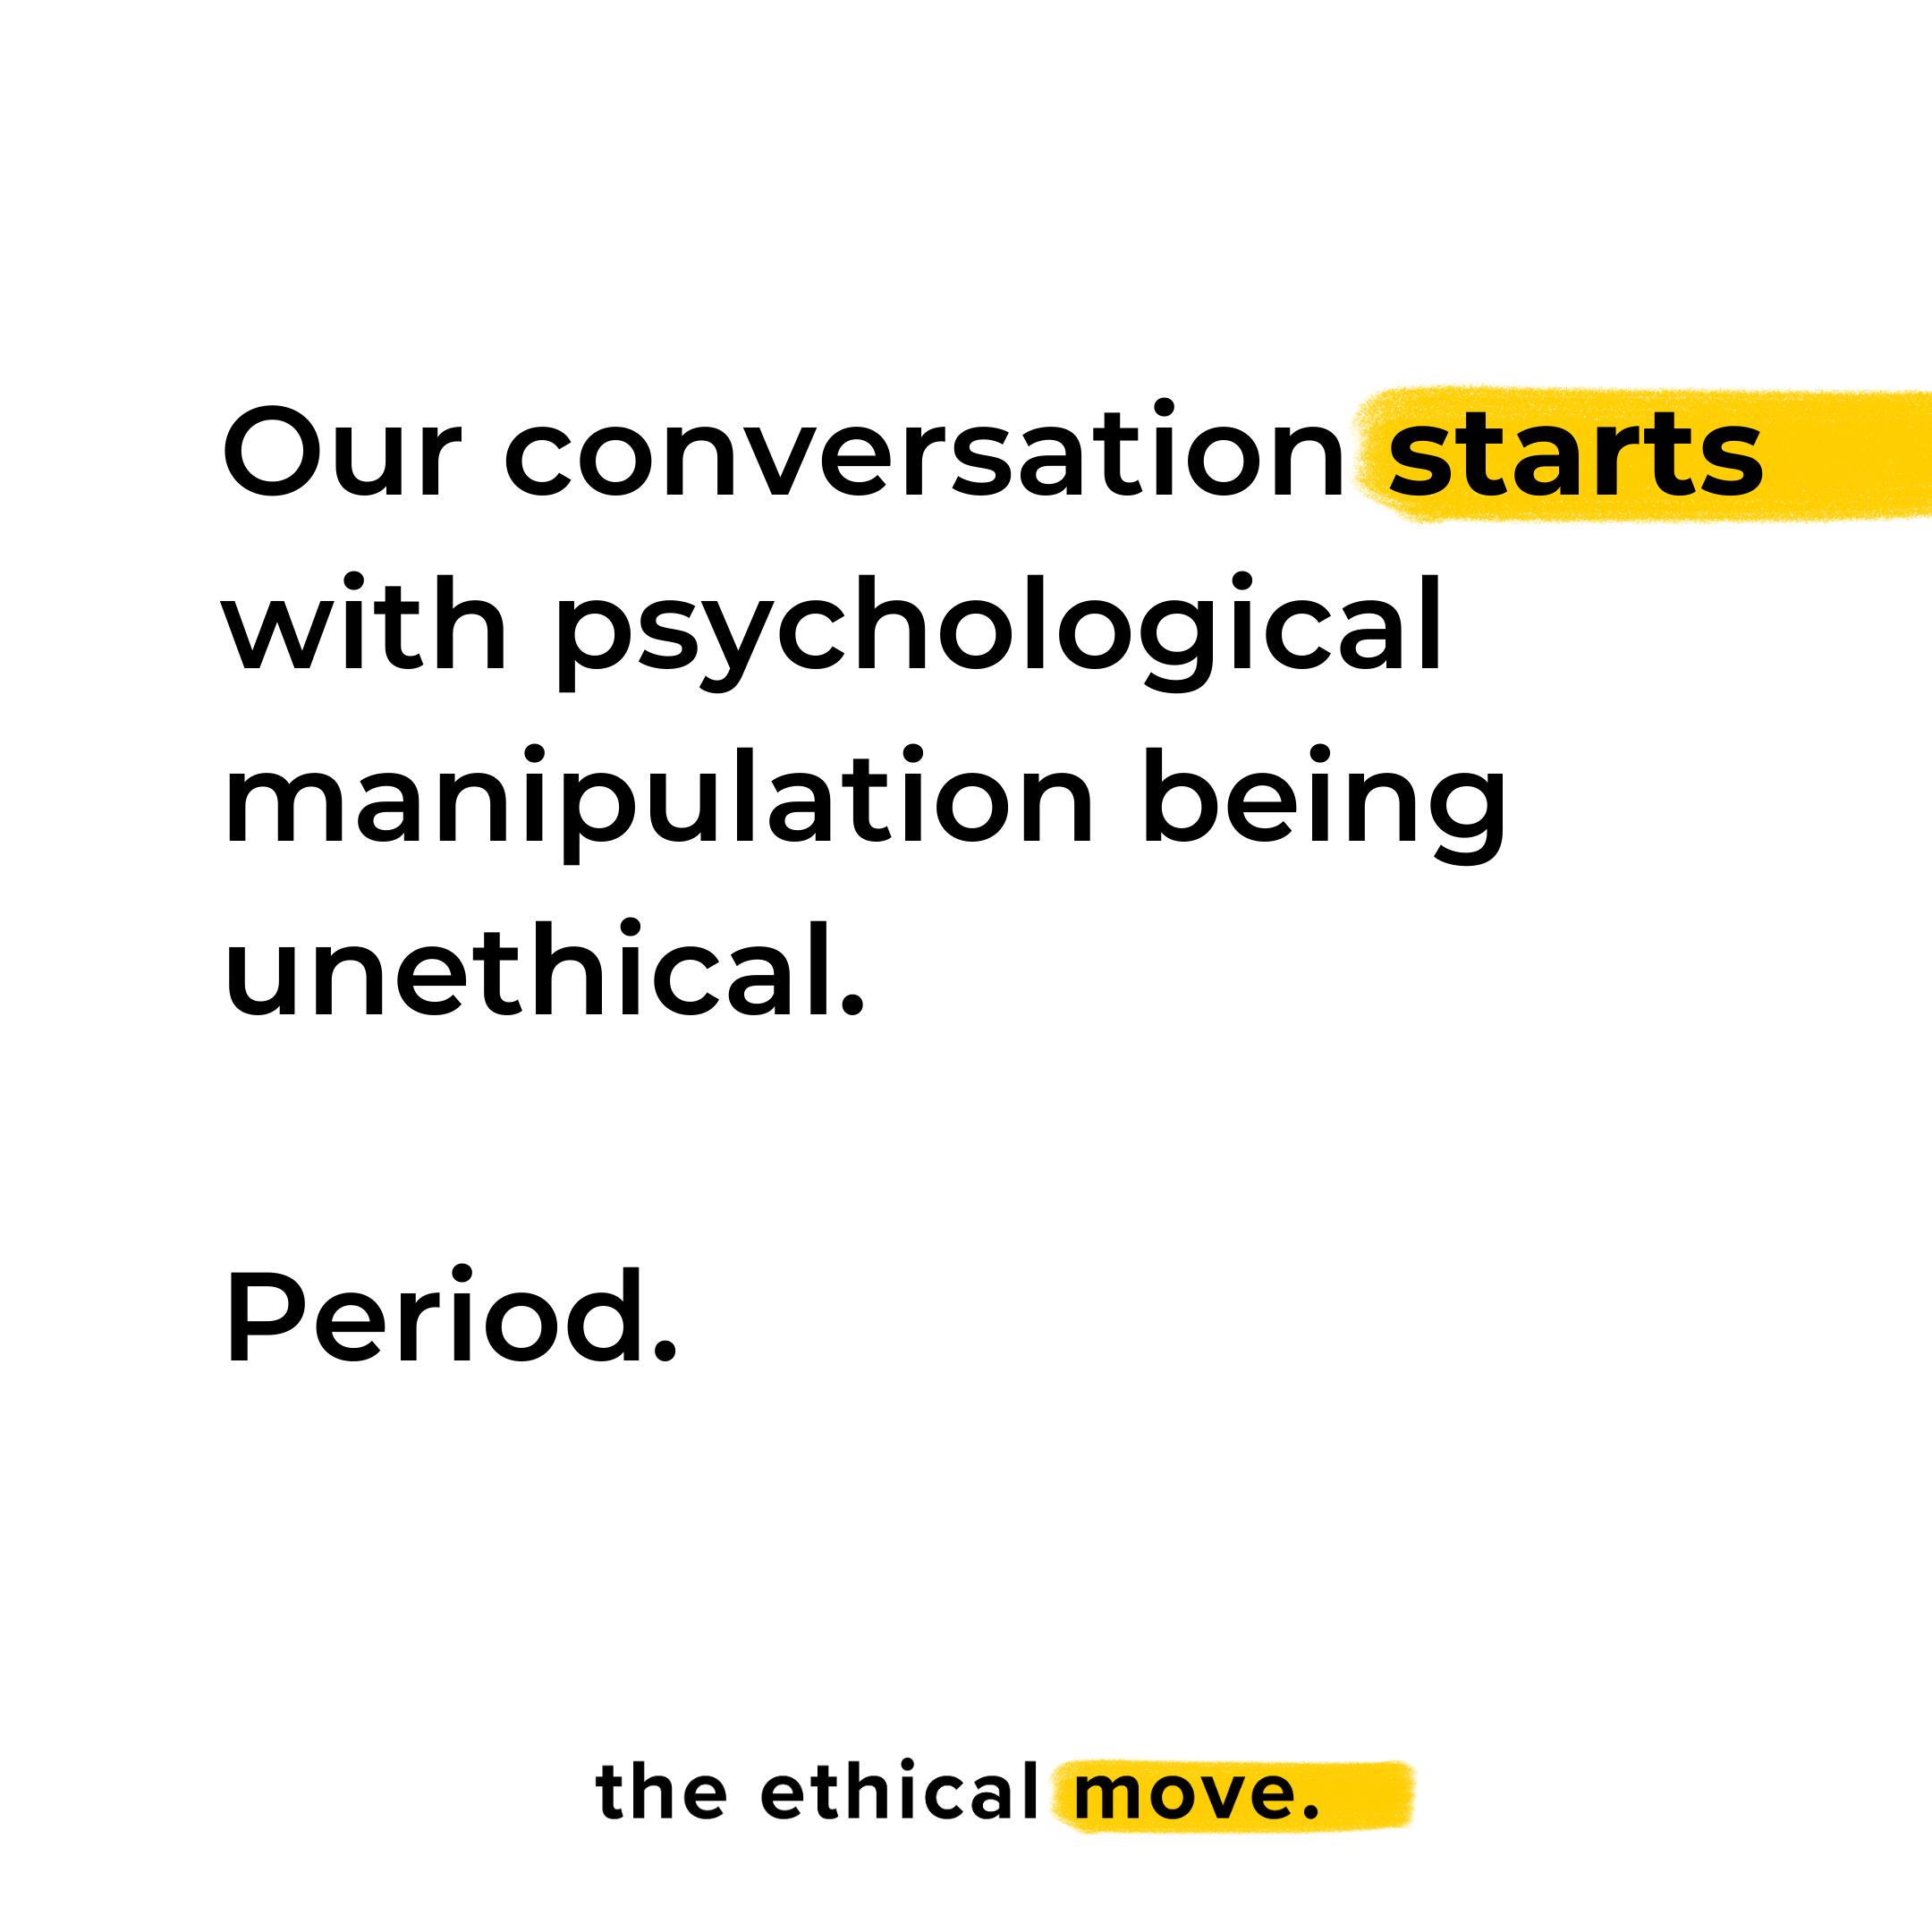 Our conversation starts with psychological manipulation being unethical. Period. the ethical move.